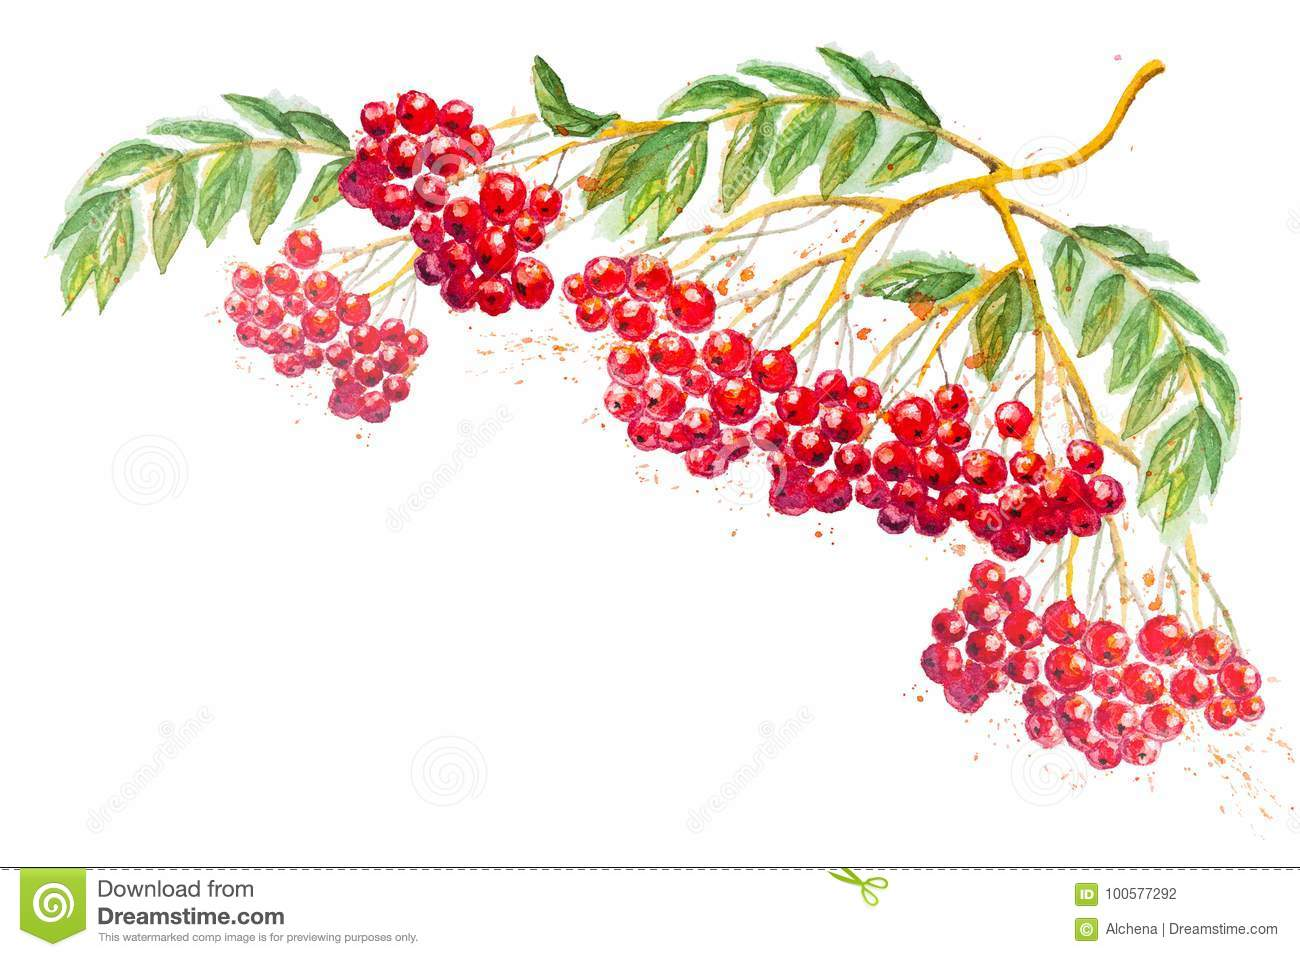 Watercolor composition with rowanberry branch